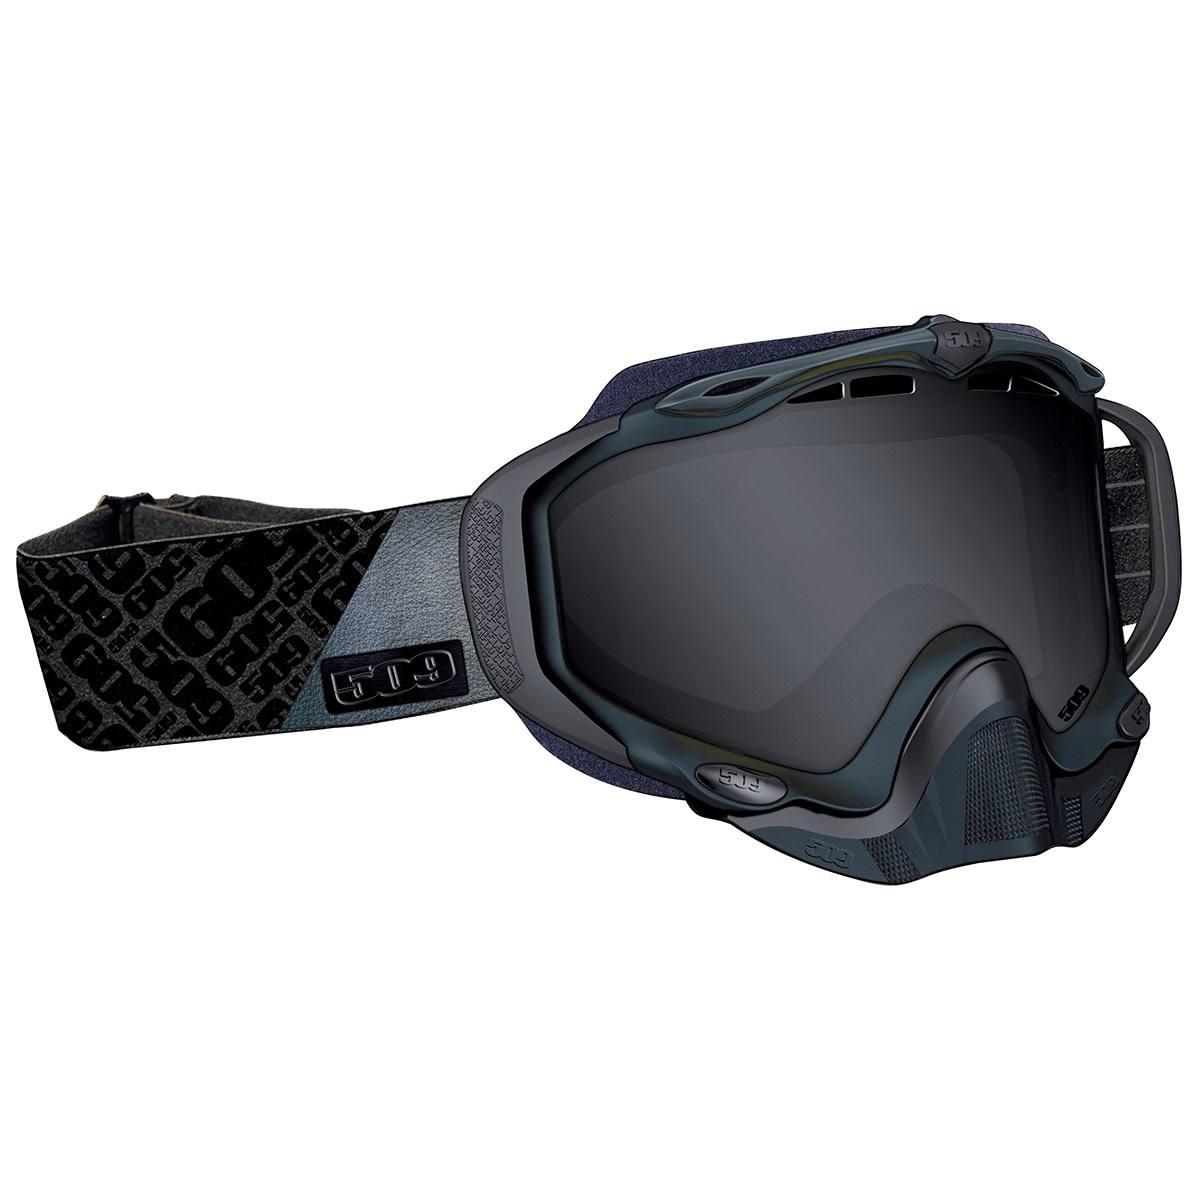 2f0fe3f4ccf SINISTER X5 GOGGLES BY 509® for sale in Jackman